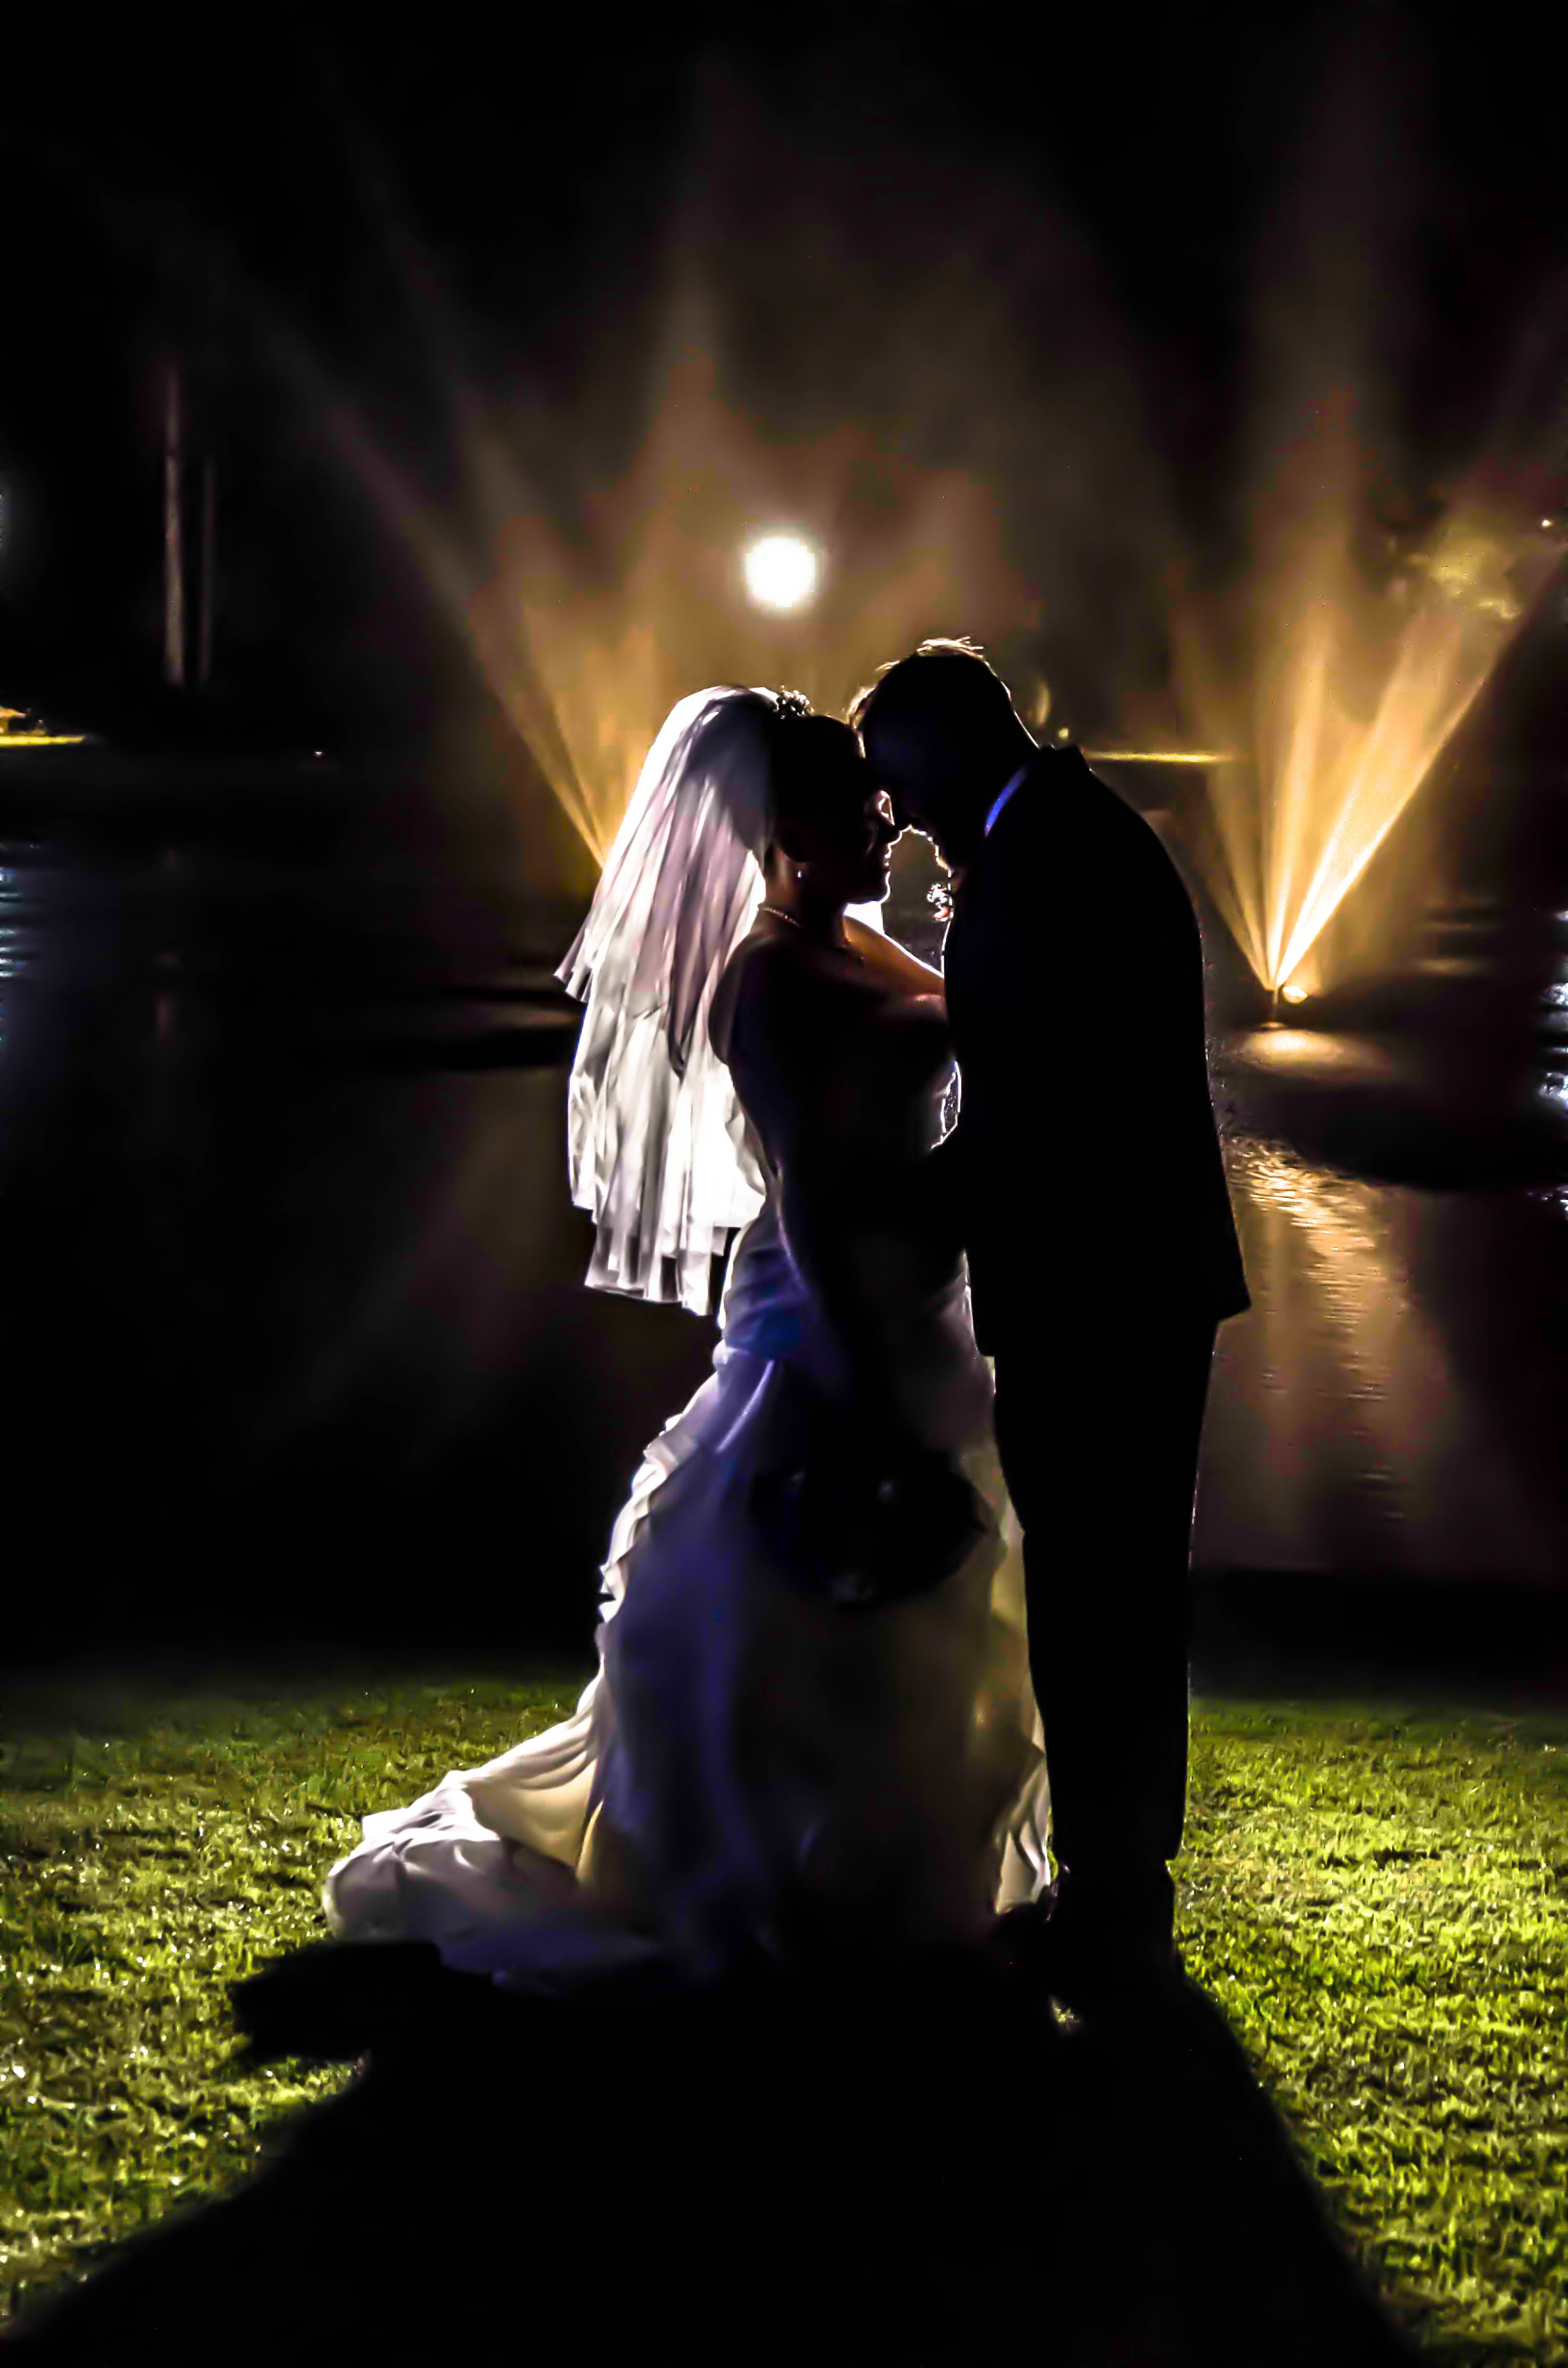 Silhouette of Bride and Groom on Grass Field during Night Times